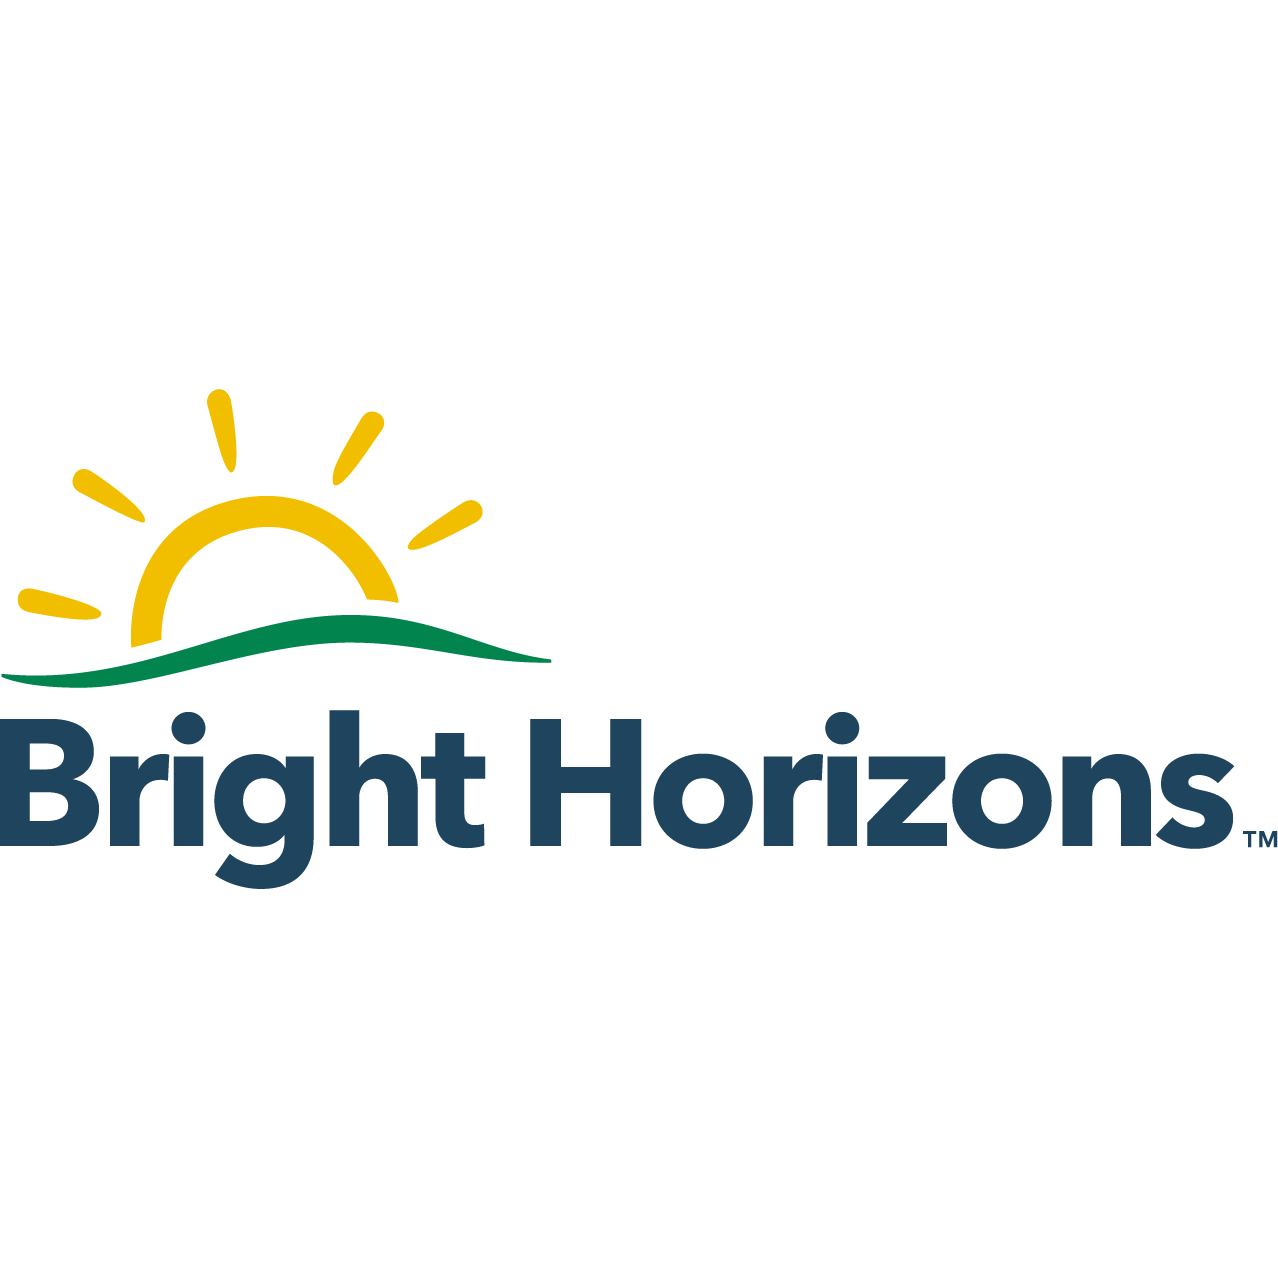 Bright Horizons Balham Day Nursery and Preschool - London, London SW12 0EF - 03339 201130 | ShowMeLocal.com